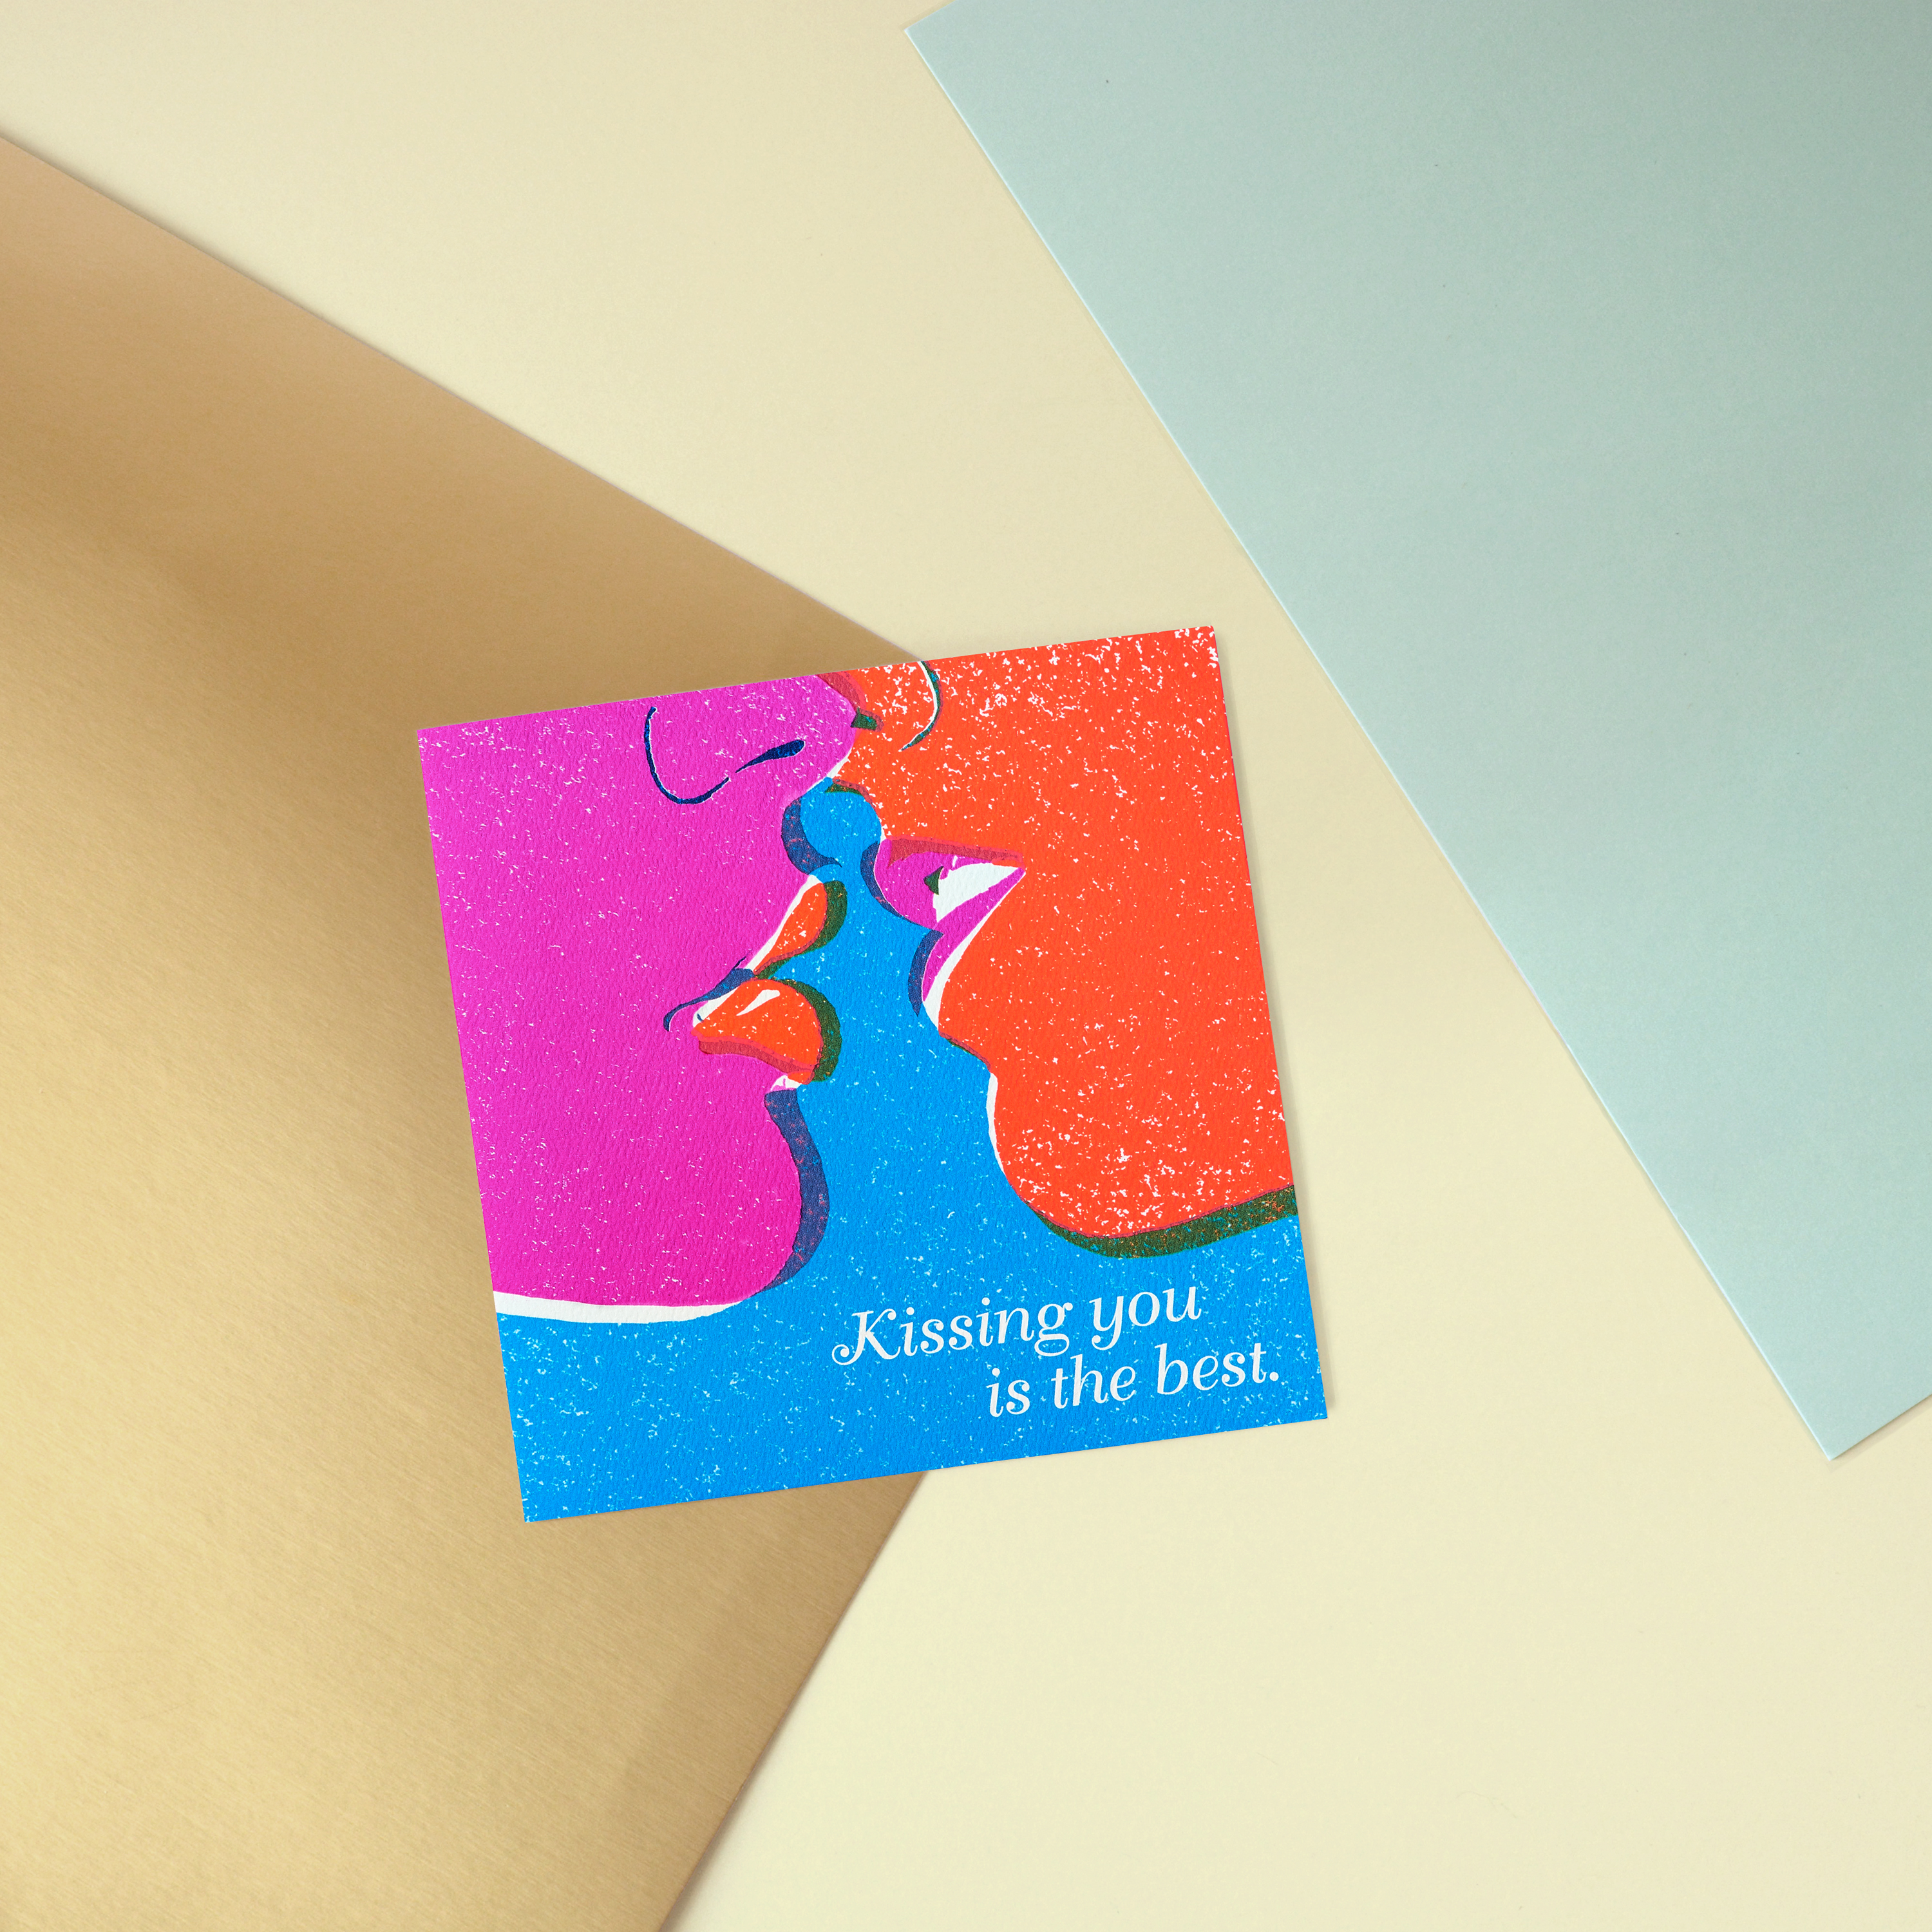 Kissing You Greeting Card - Romantic, Anniversary, Thinking of You image